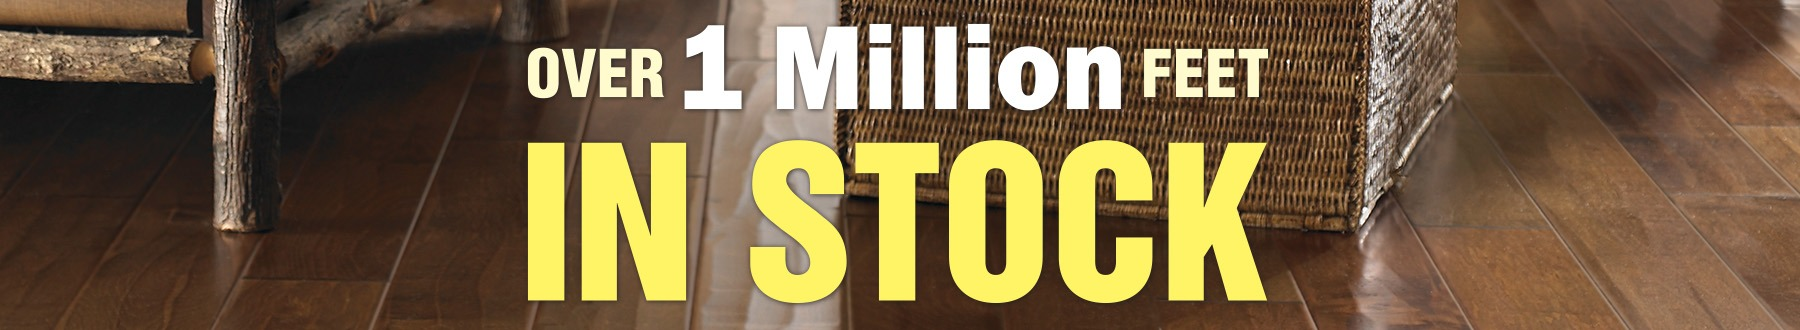 1 million feet in stock flooring